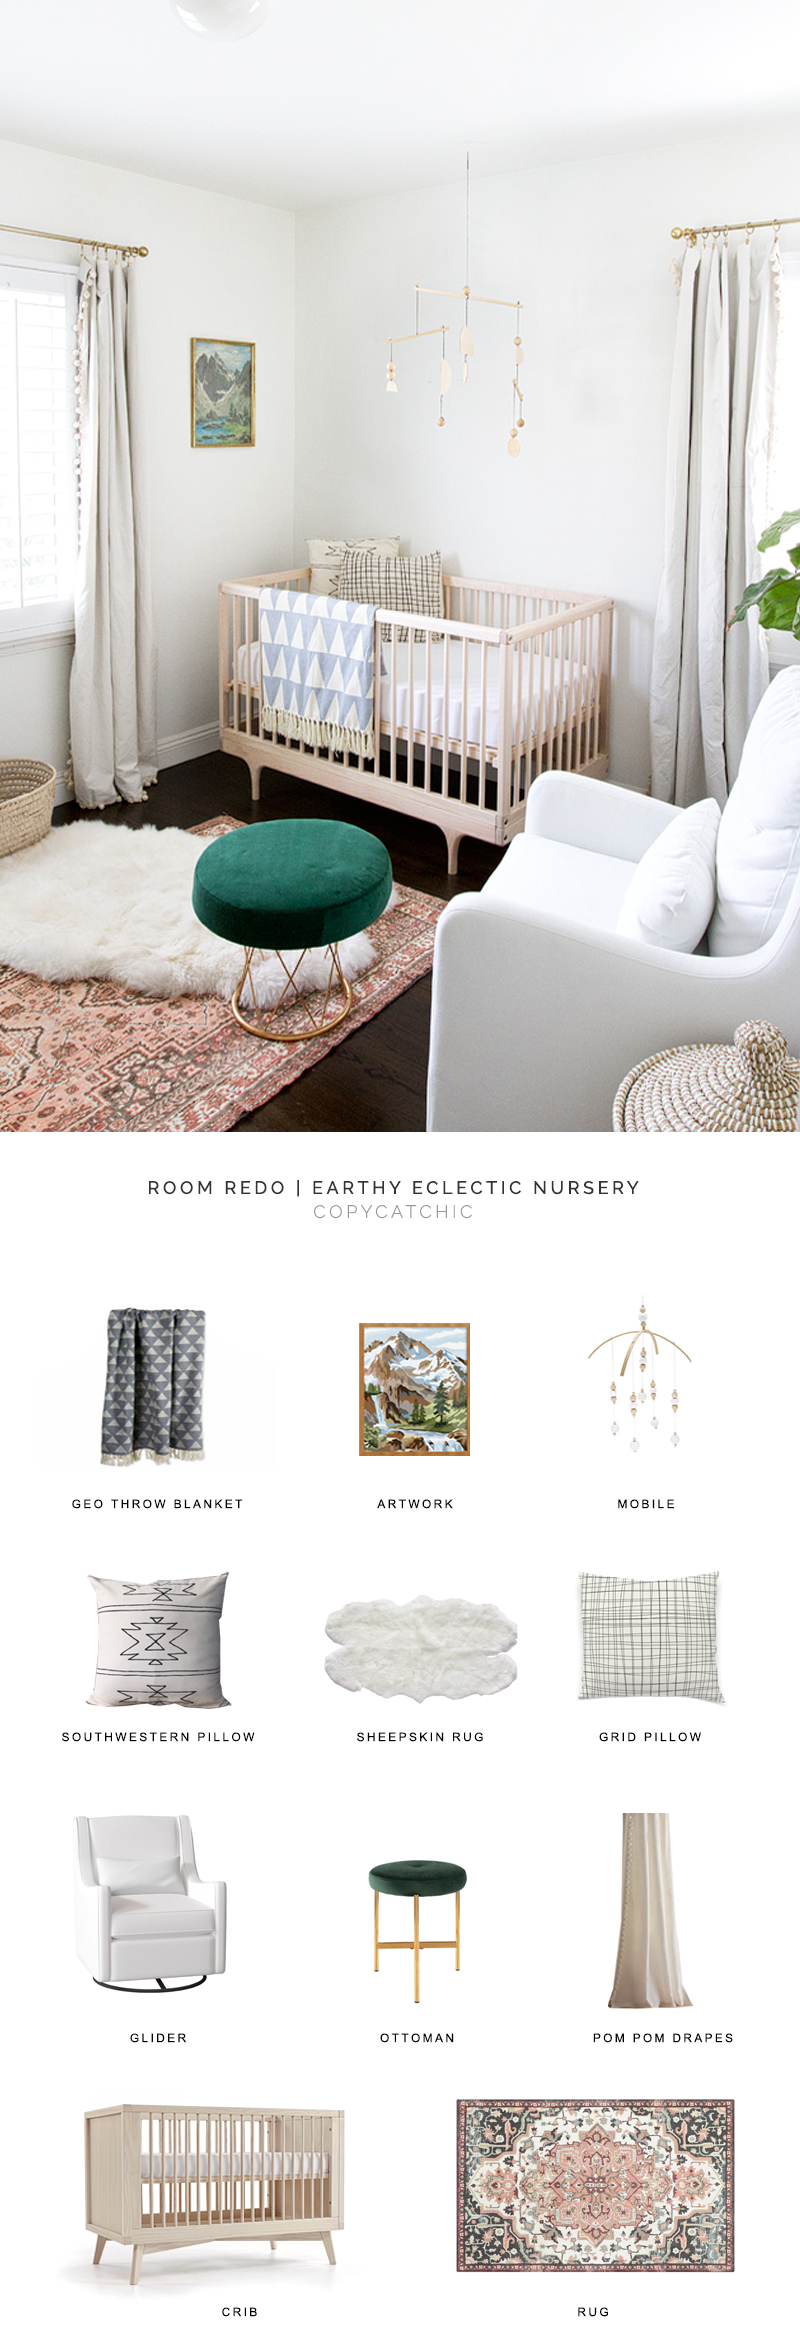 modern nursery look for less, copycatchic luxe living for less, budget home decor and design, daily finds, home trends, sales, budget travel and room redos